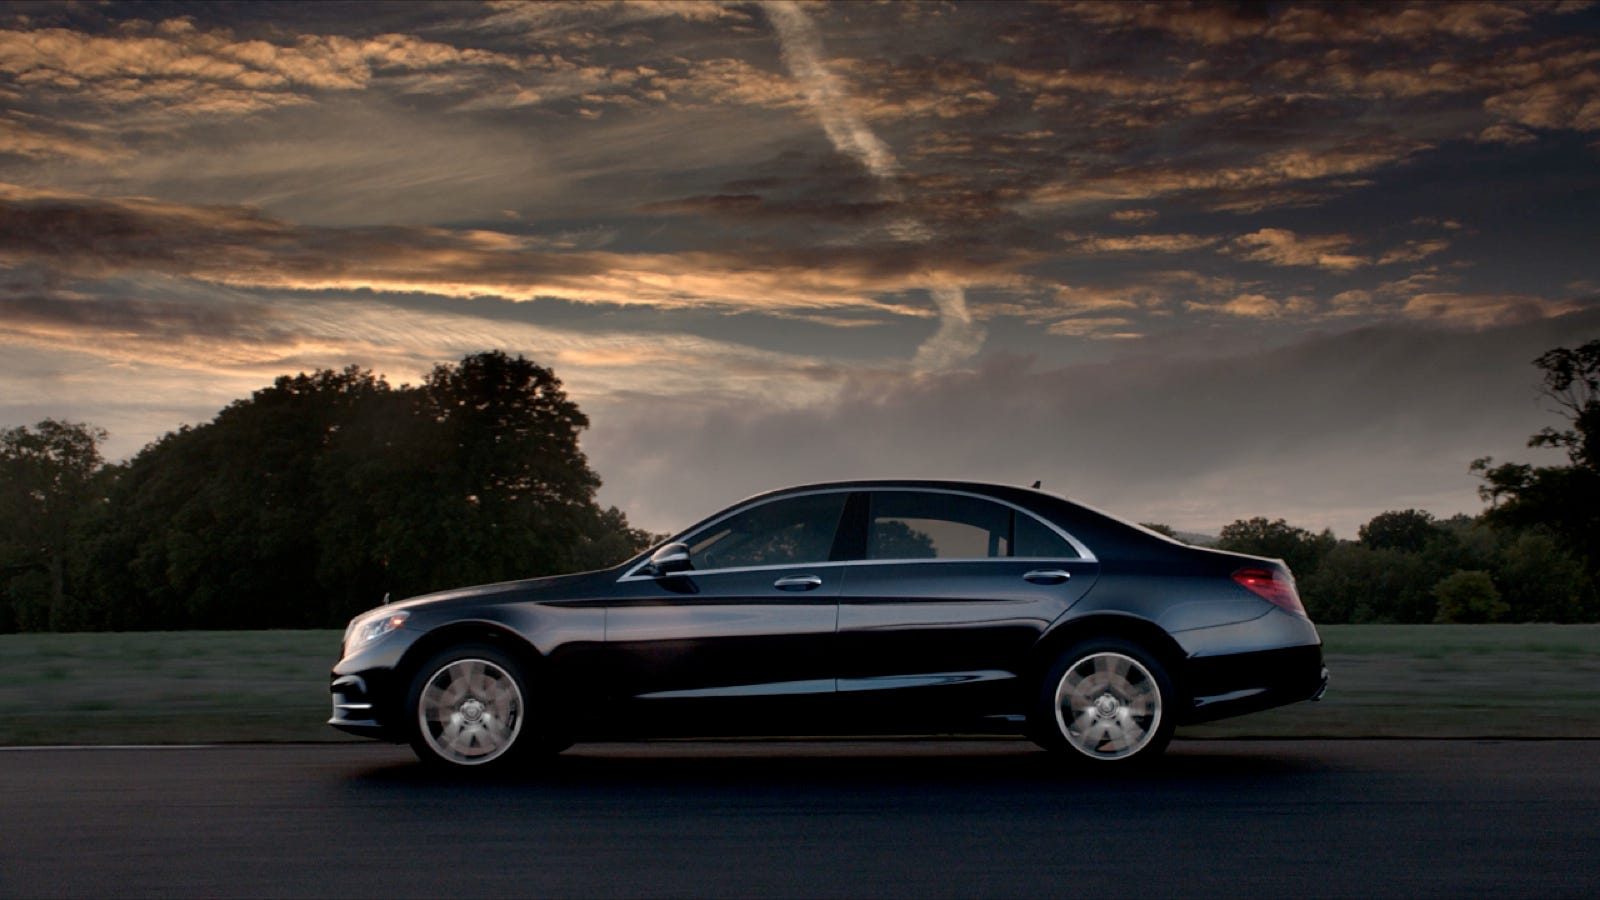 All new mercedes benz flagship 2014 s class makes its in for Mercedes benz flagship car